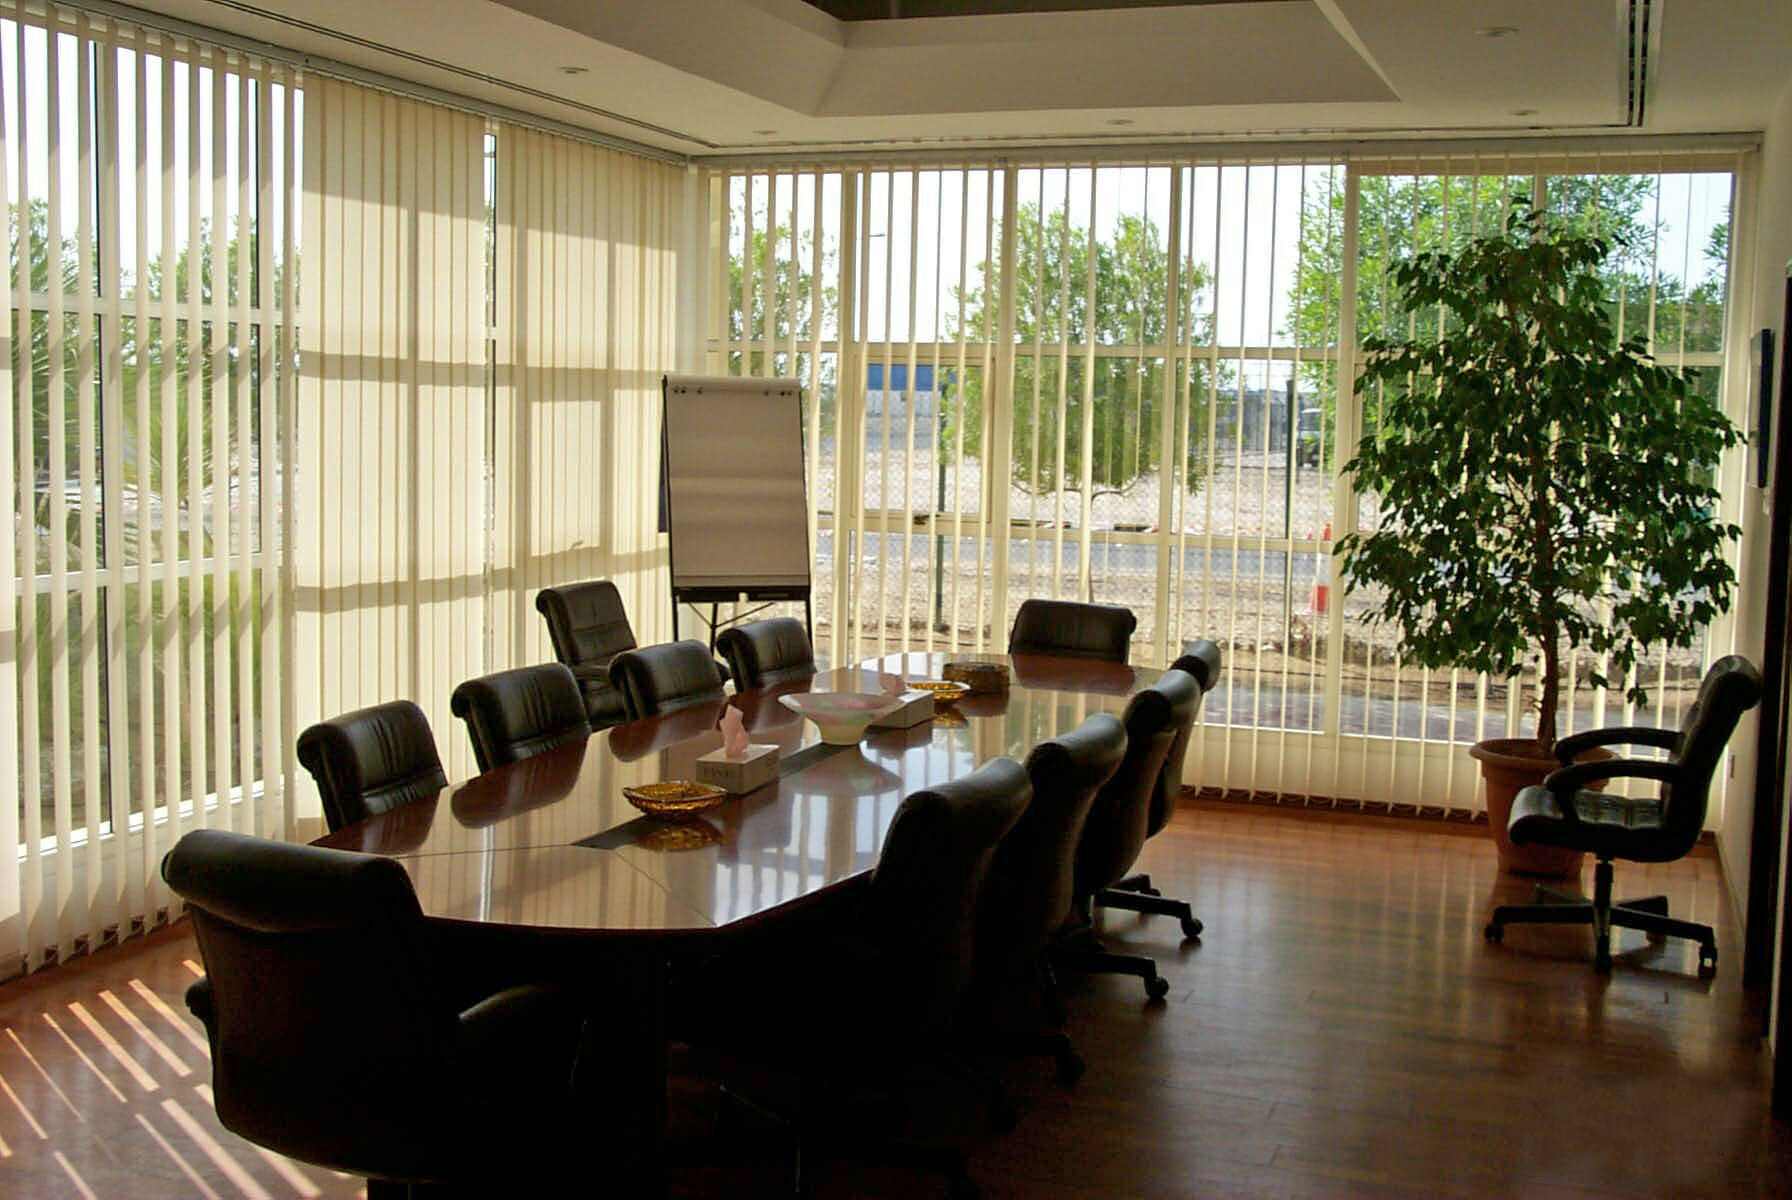 White vertical blinds in a wooden styled meeting room